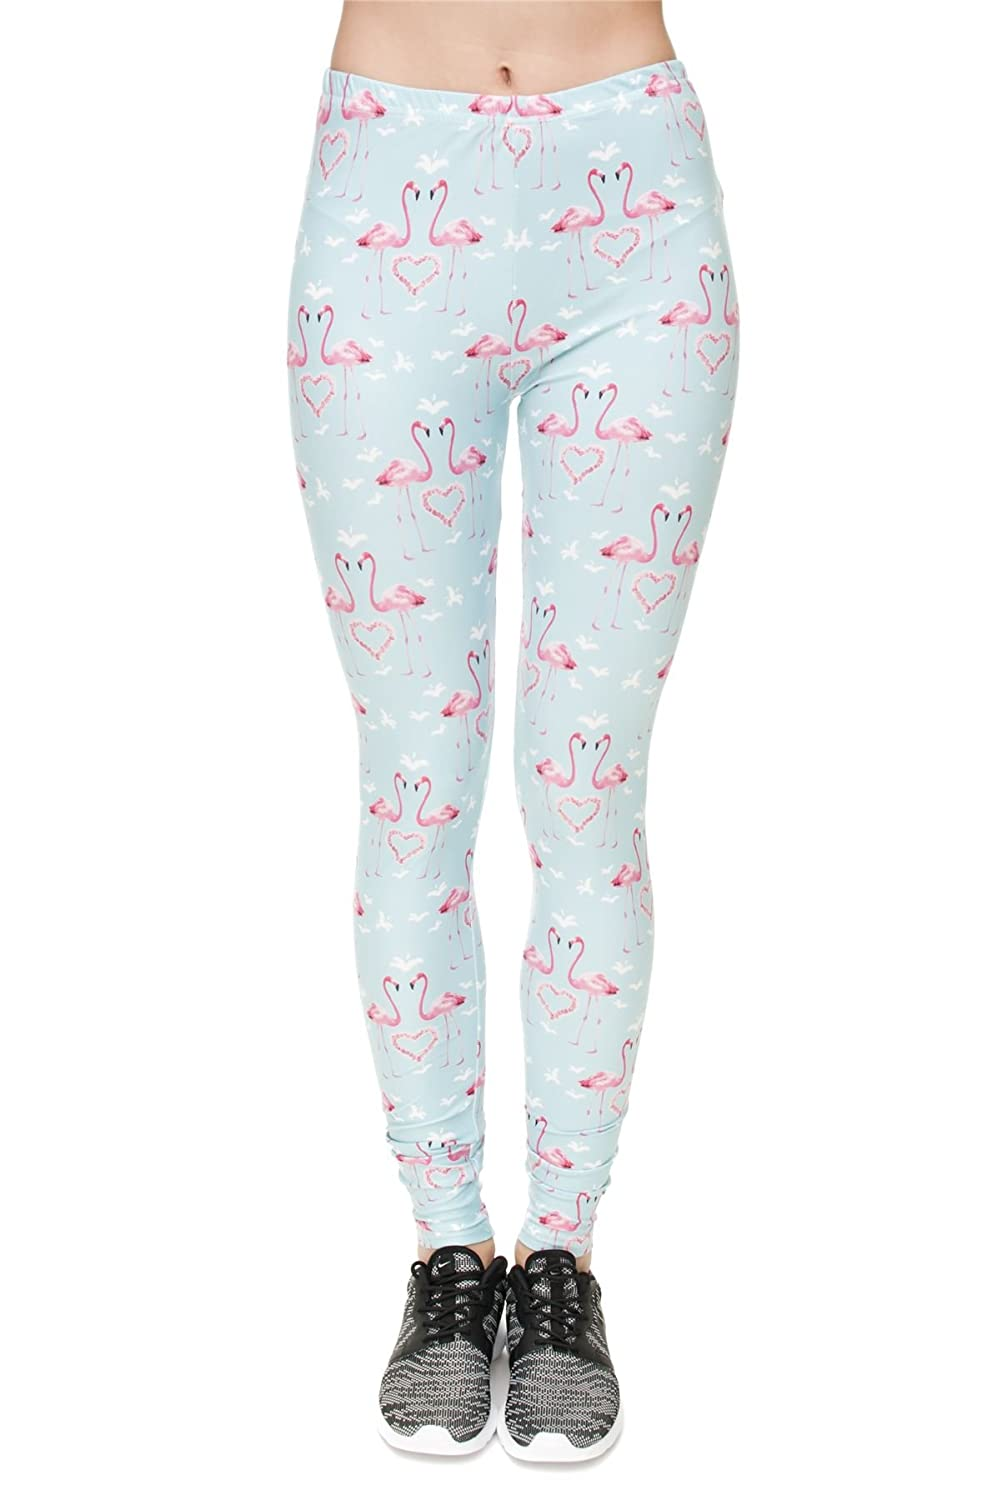 kukubird PANTS レディース B075XSV5BP Flamingo Hearts レディース Flamingo B075XSV5BP PANTS Hearts, サヌキ市:3d34df57 --- itxassou.fr